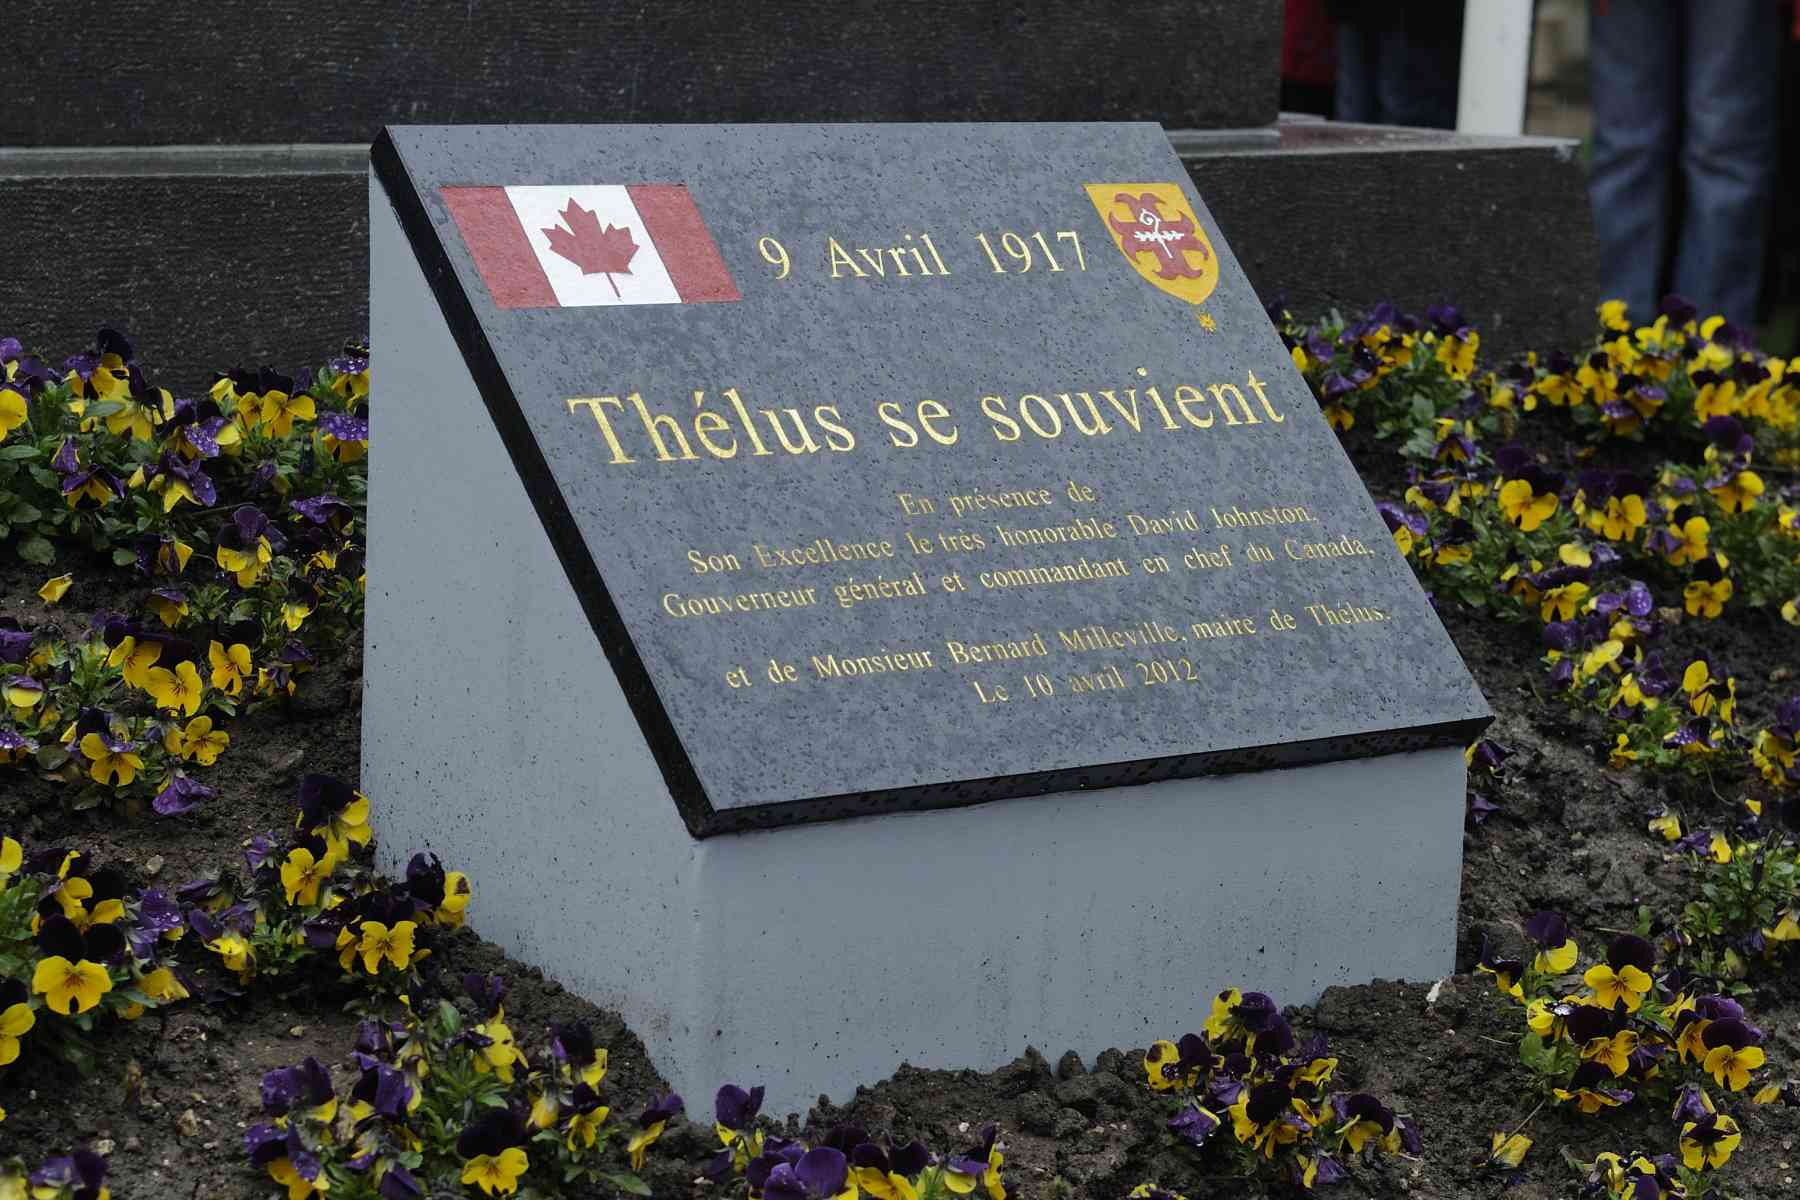 The plaque is a reminder of the battle won by the First Division of  Canadian Corps Artillery on April 9, 1917.